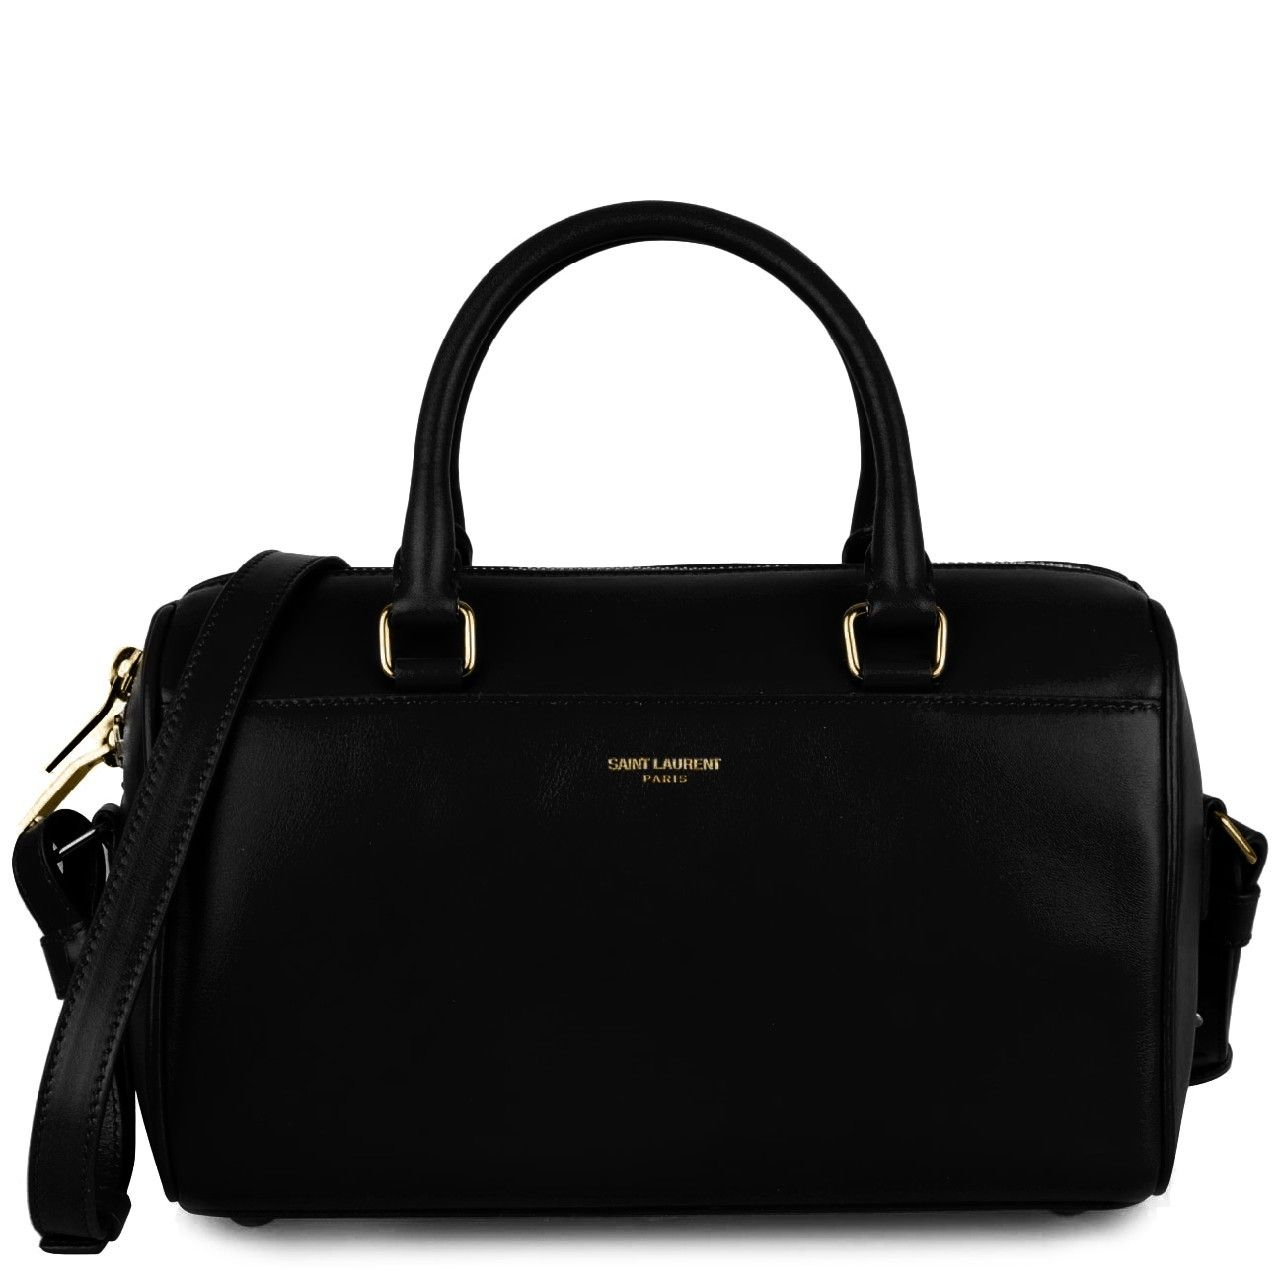 Hirshleifers - Saint Laurent - Classic Duffle 3 Bag (Black ... 7211cfba21404